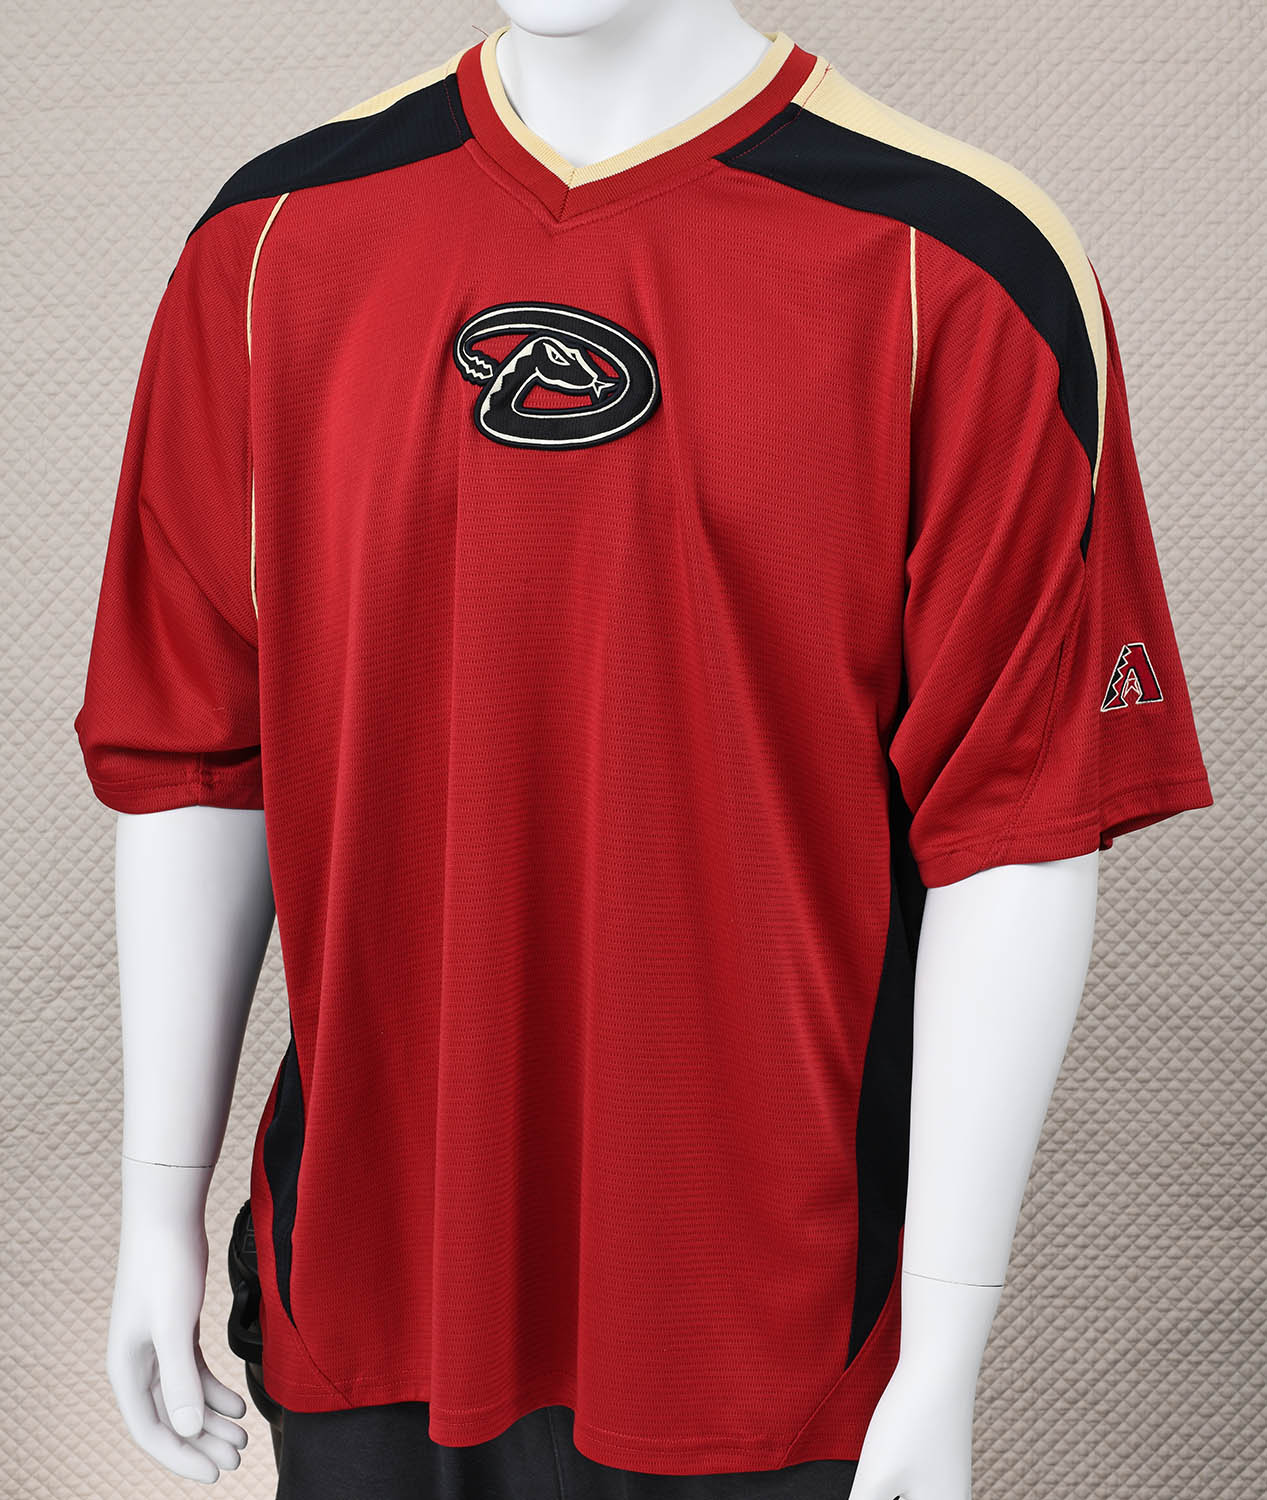 Arizona Diamondbacks Warmup Jersey